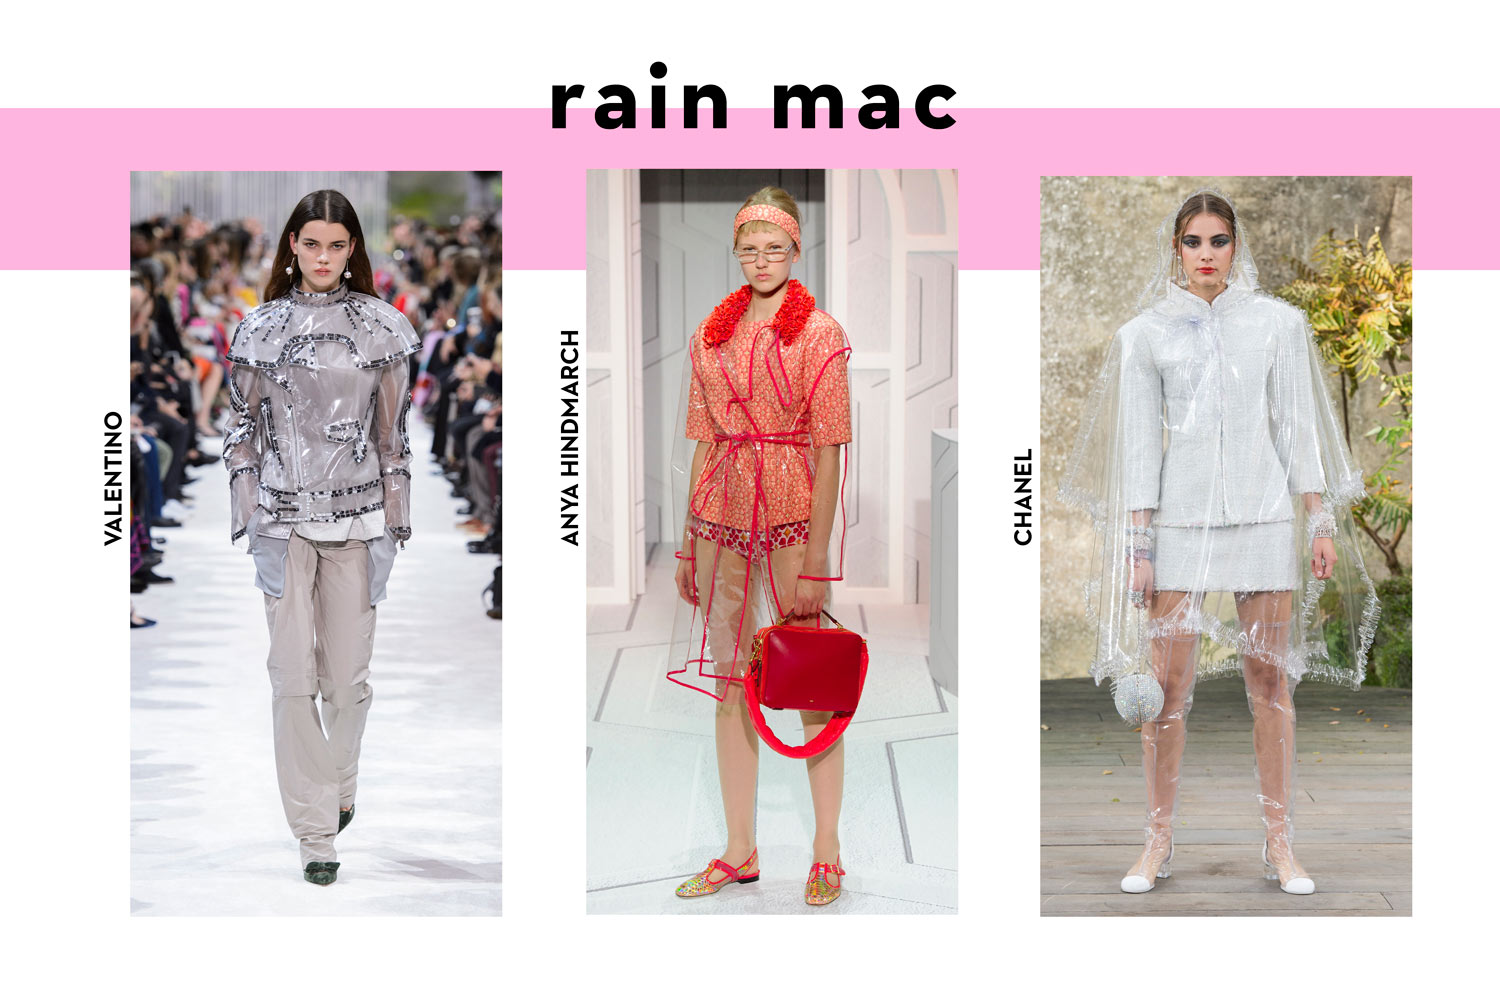 Summer fashion trends 2018 transparent rain macs